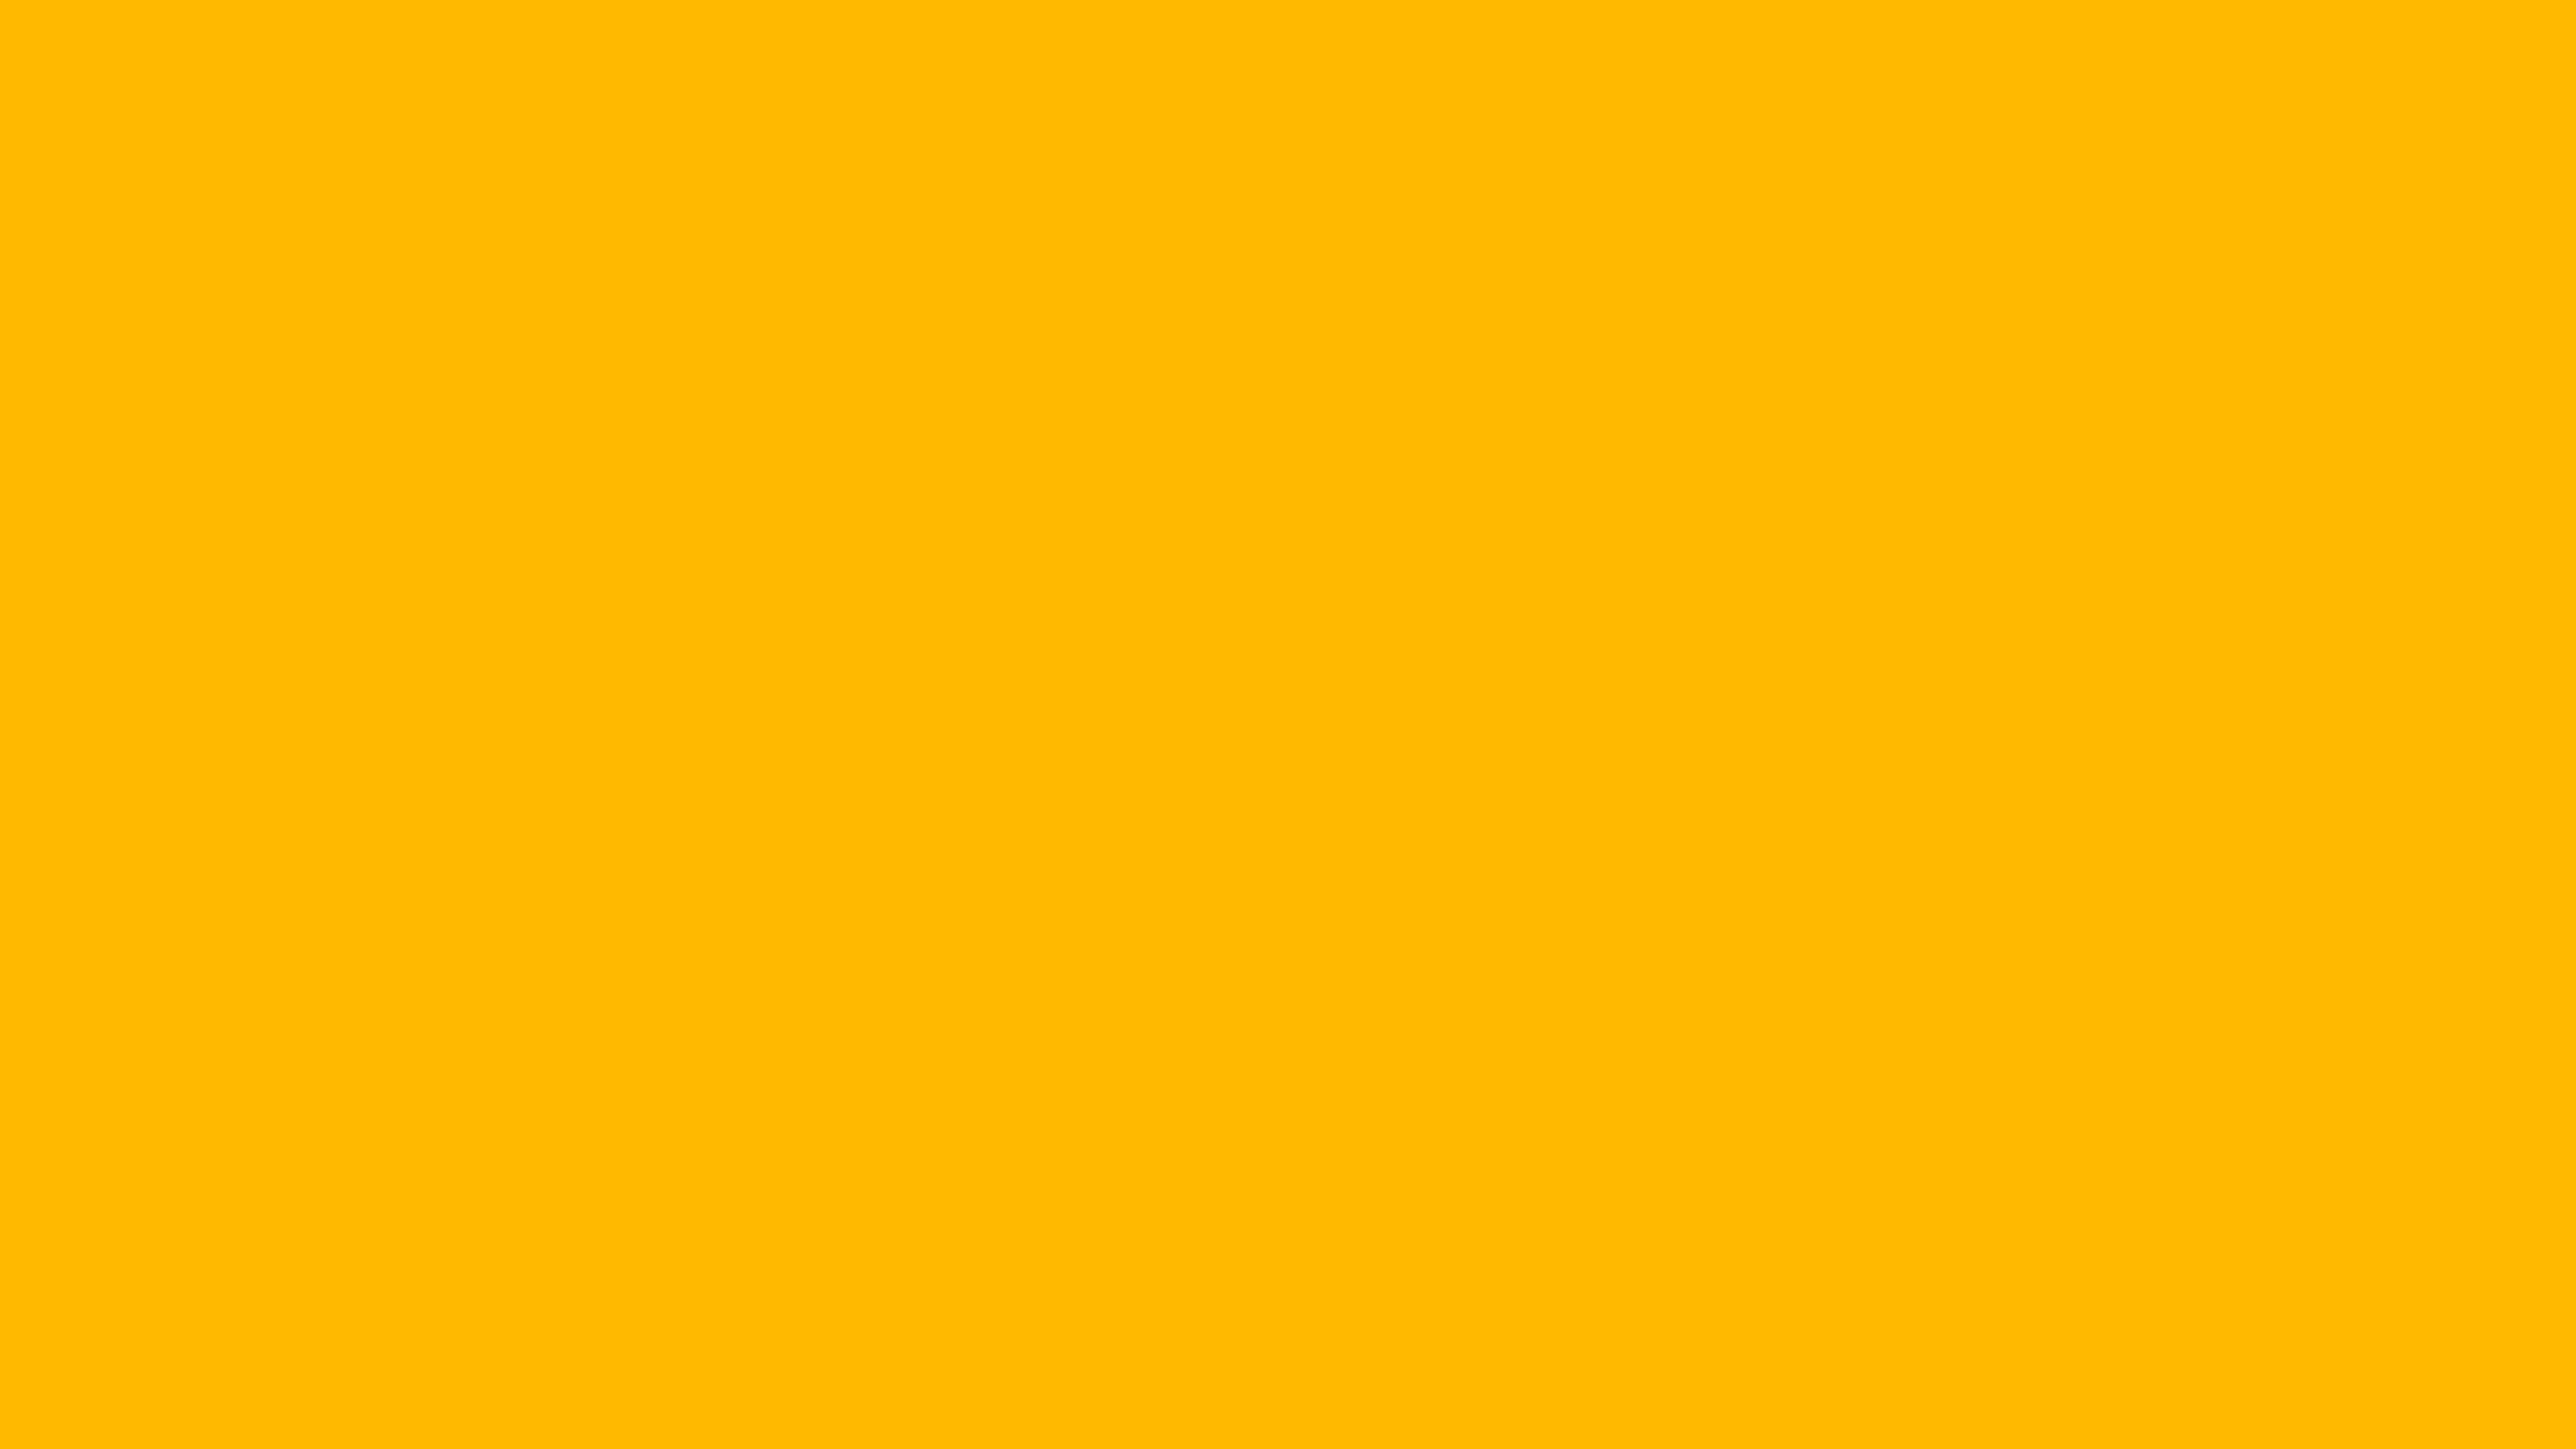 7680x4320 Selective Yellow Solid Color Background